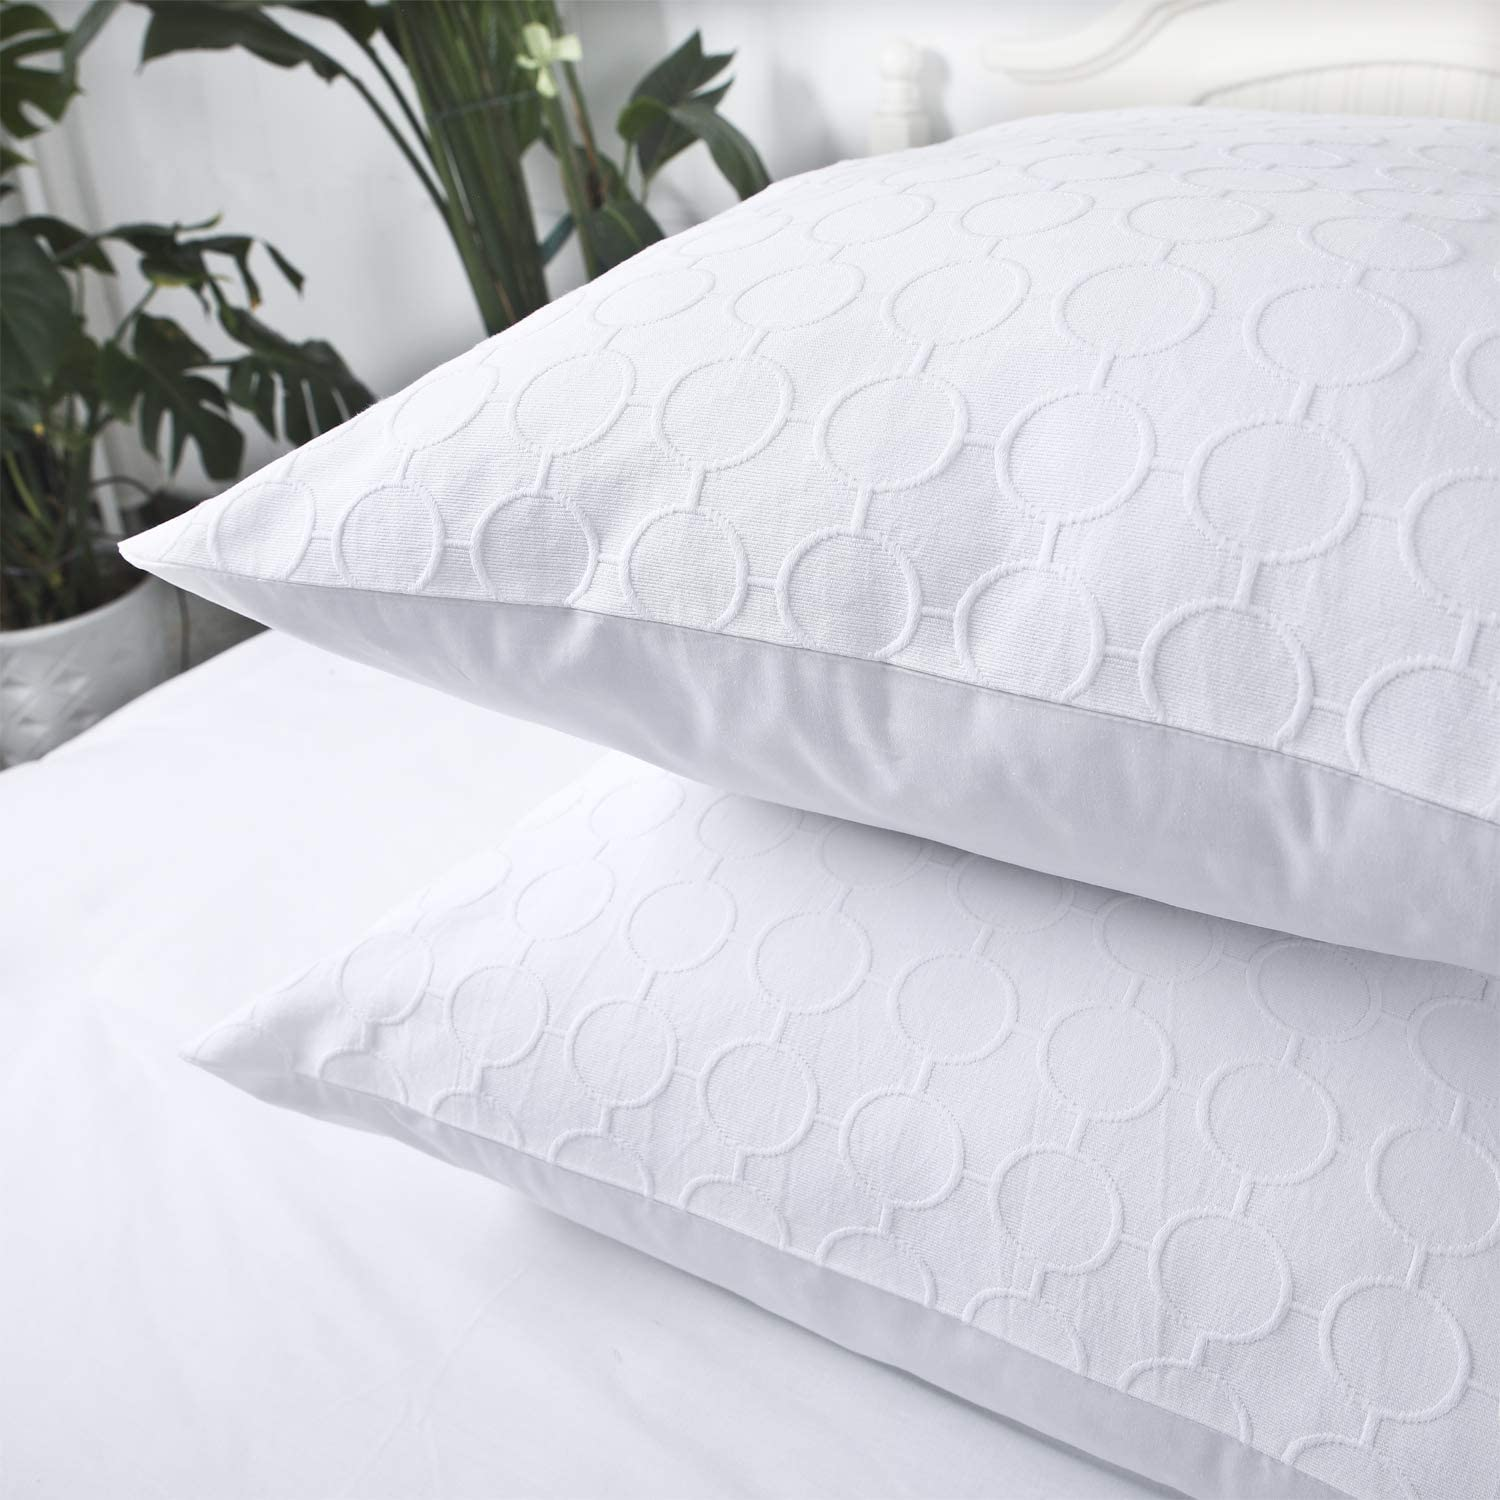 YINFUNG White Pillow Shams King Matelasse Quilted Pattern Set of 2 Polka Dot Textured Pillowcases Embroidered Weave Geometric Jacquard Cotton Thick Farmhouse 20×36